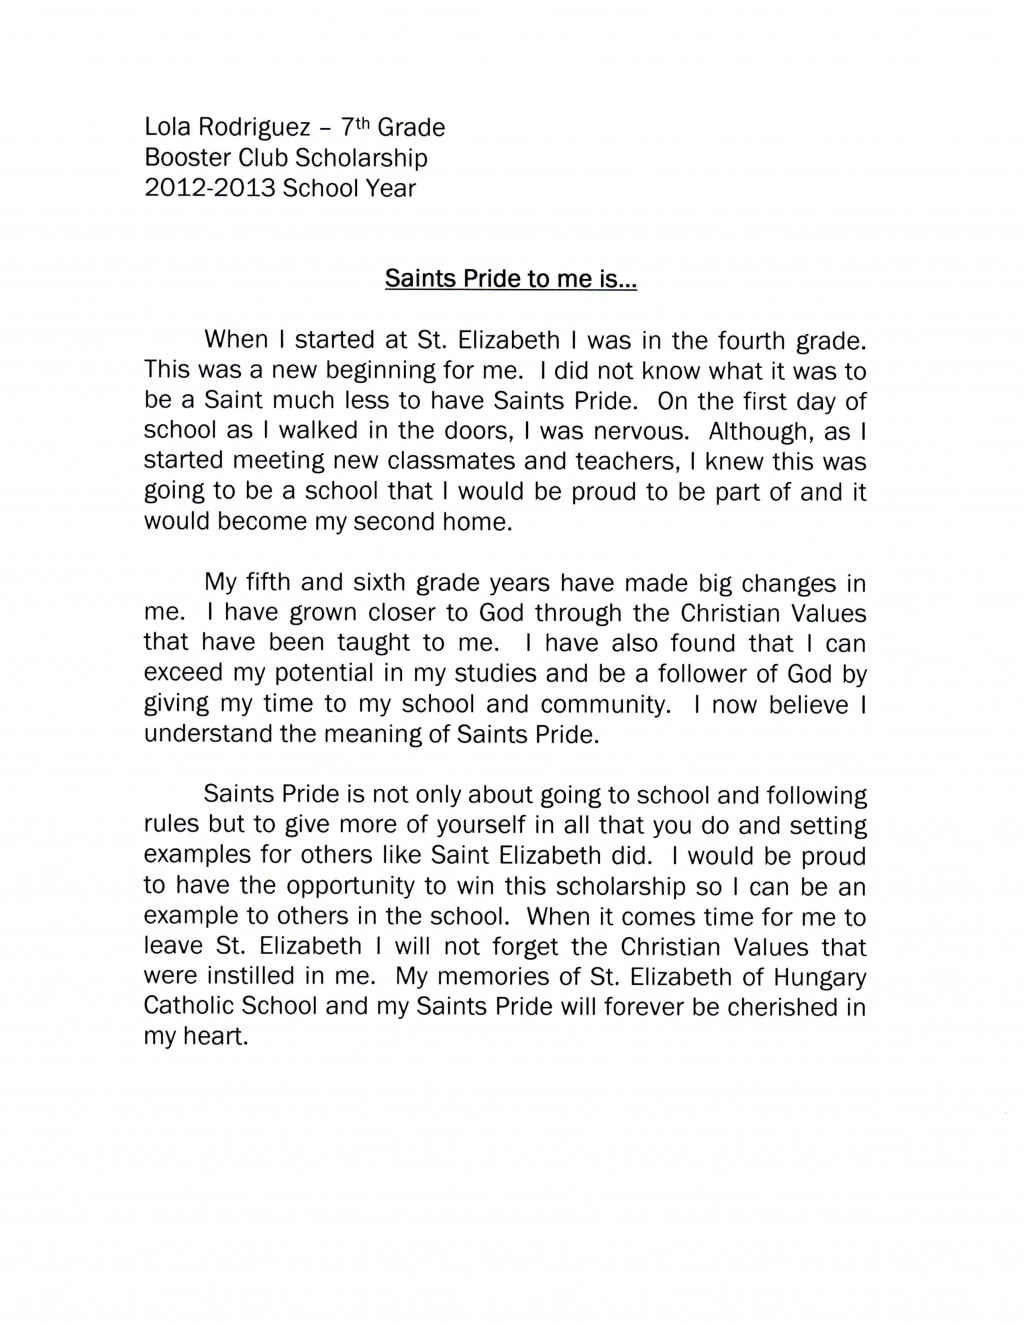 002 Essay Example Lola Rodriguez I Need Help Writing Stunning An A Narrative For Free Evaluation Large